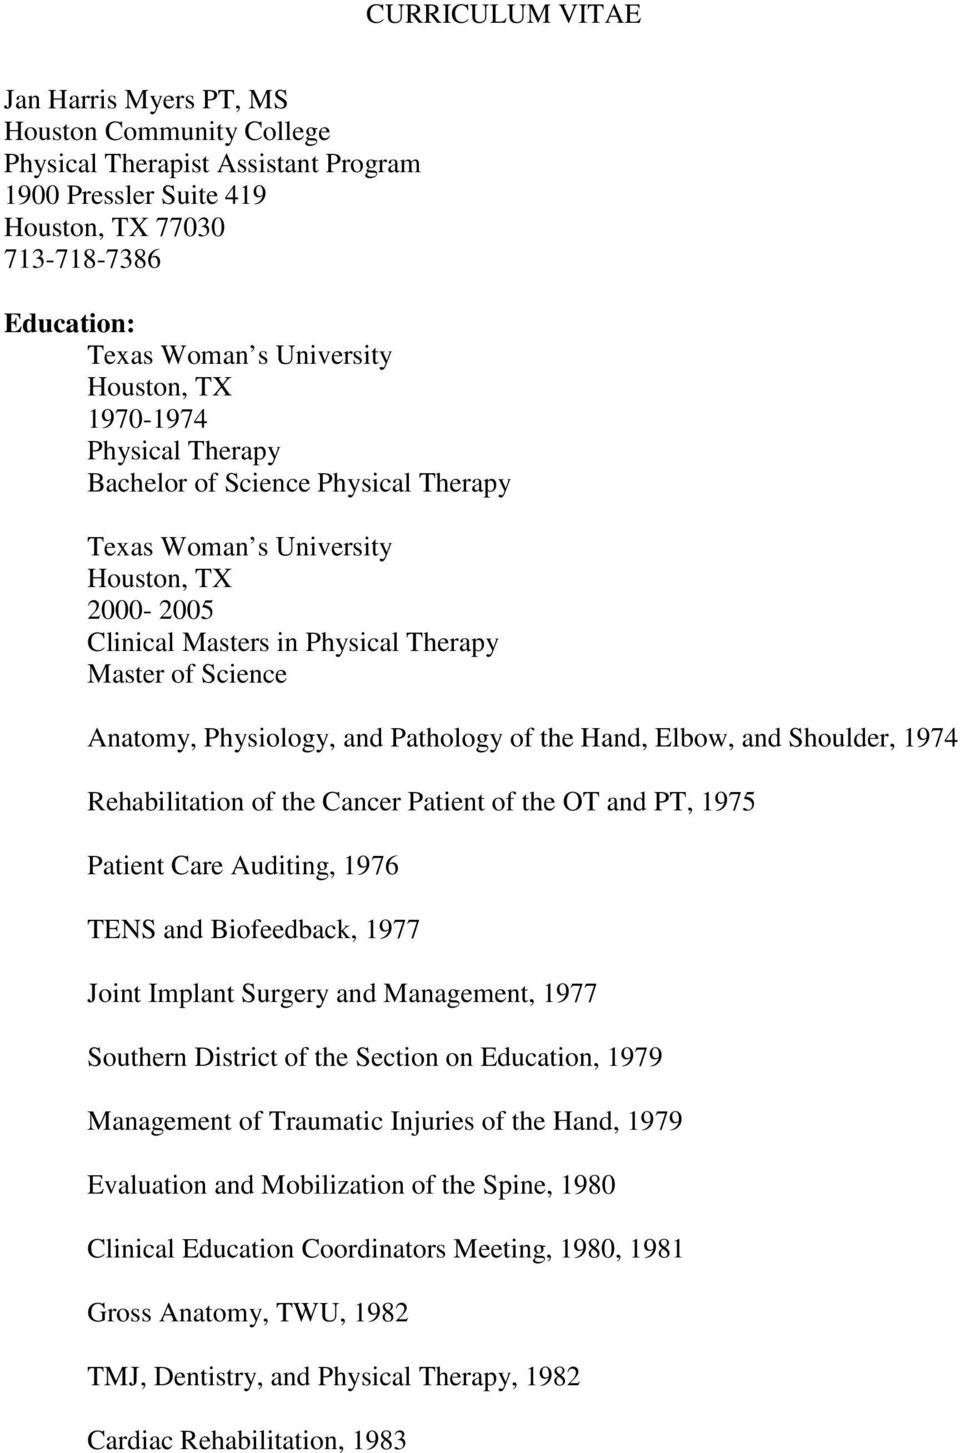 1974 Rehabilitation of the Cancer Patient of the OT and PT, 1975 Patient Care Auditing, 1976 TENS and Biofeedback, 1977 Joint Implant Surgery and Management, 1977 Southern District of the Section on